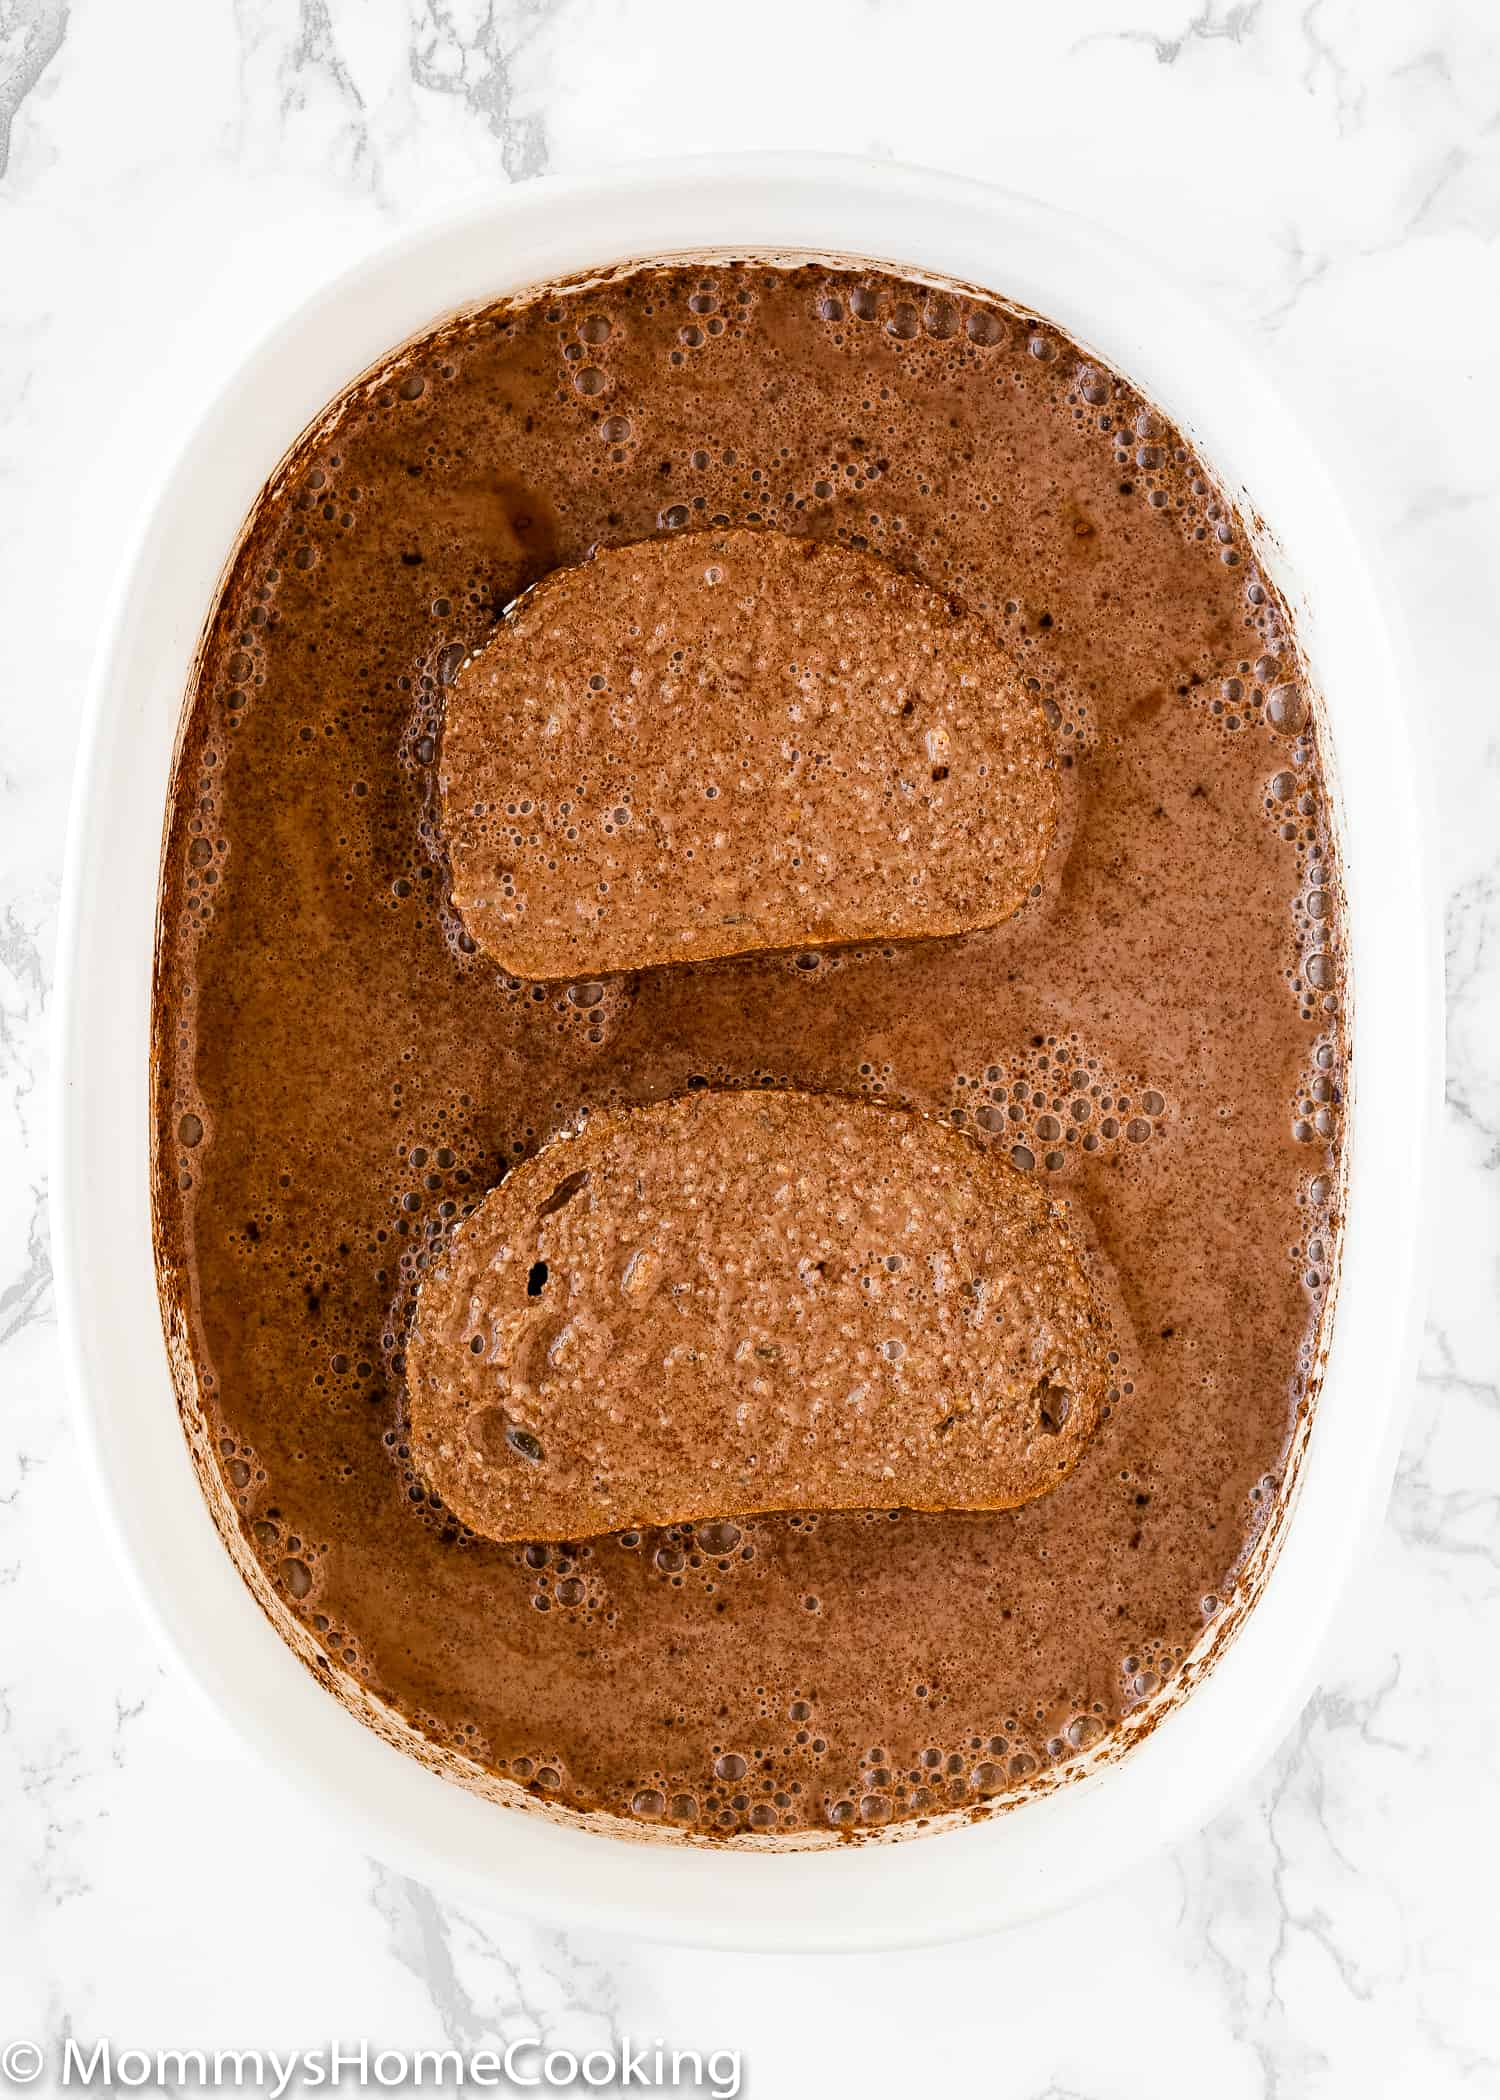 This Easy Eggless Chocolate French Toast is delicious, ridiculously easy to make and will be ready in a flash! With slightly crisp outsides, and light yet custardy insides, this chocolate French toast is perfect to satisfy those sweet-tooth cravings. https://mommyshome cooking.com